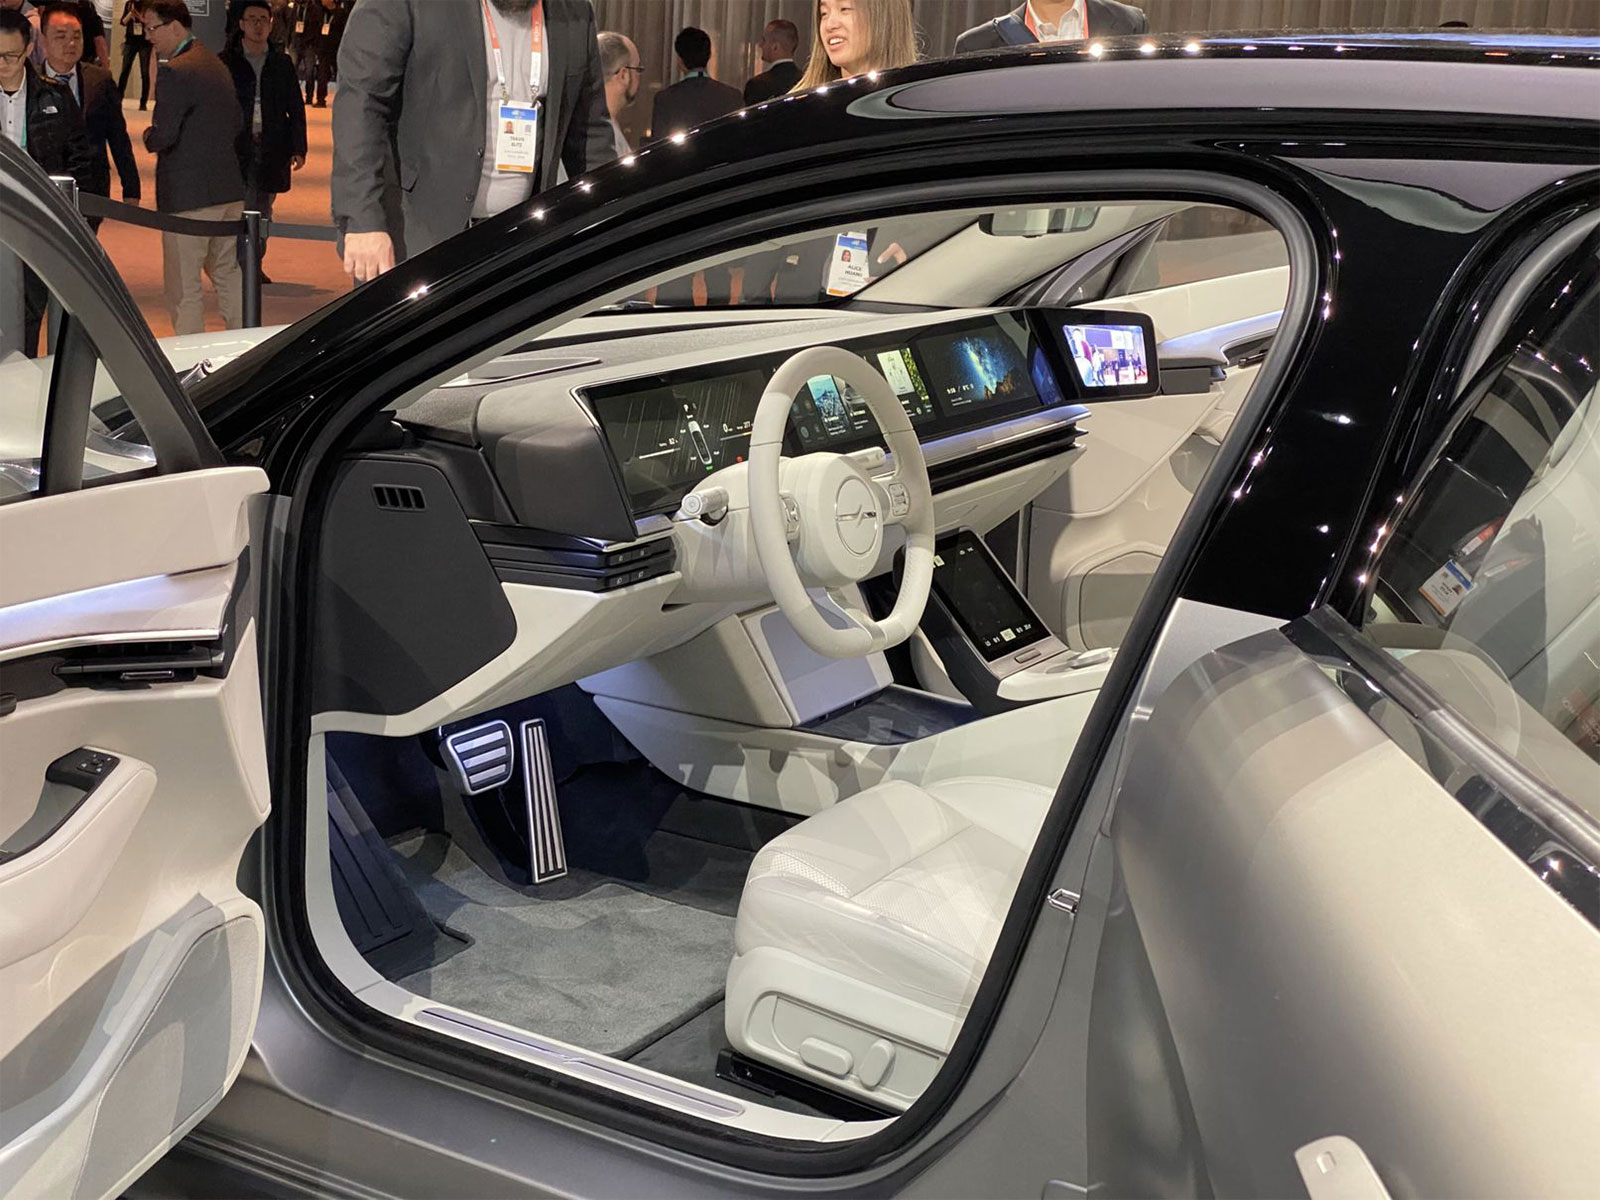 Inside Sony's Vision-S concept car at CES 2020